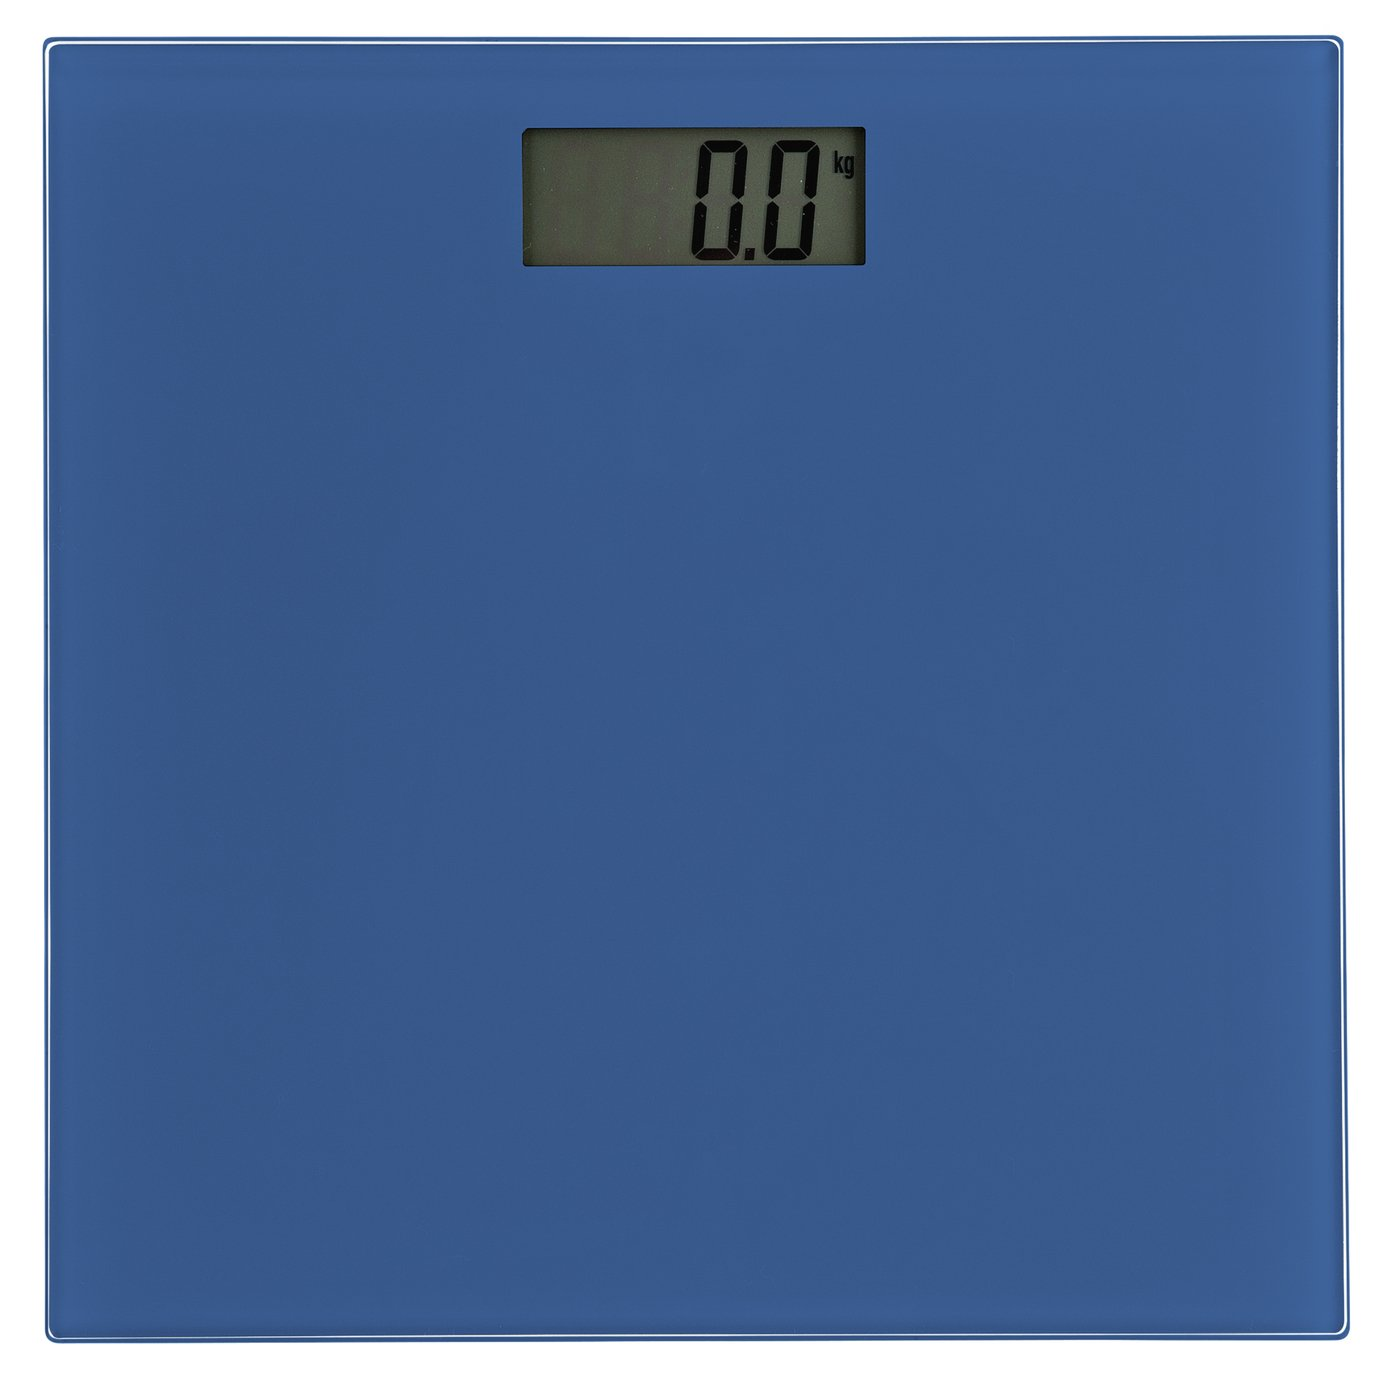 Argos Home Electronic Bathroom Scales - Ink Blue